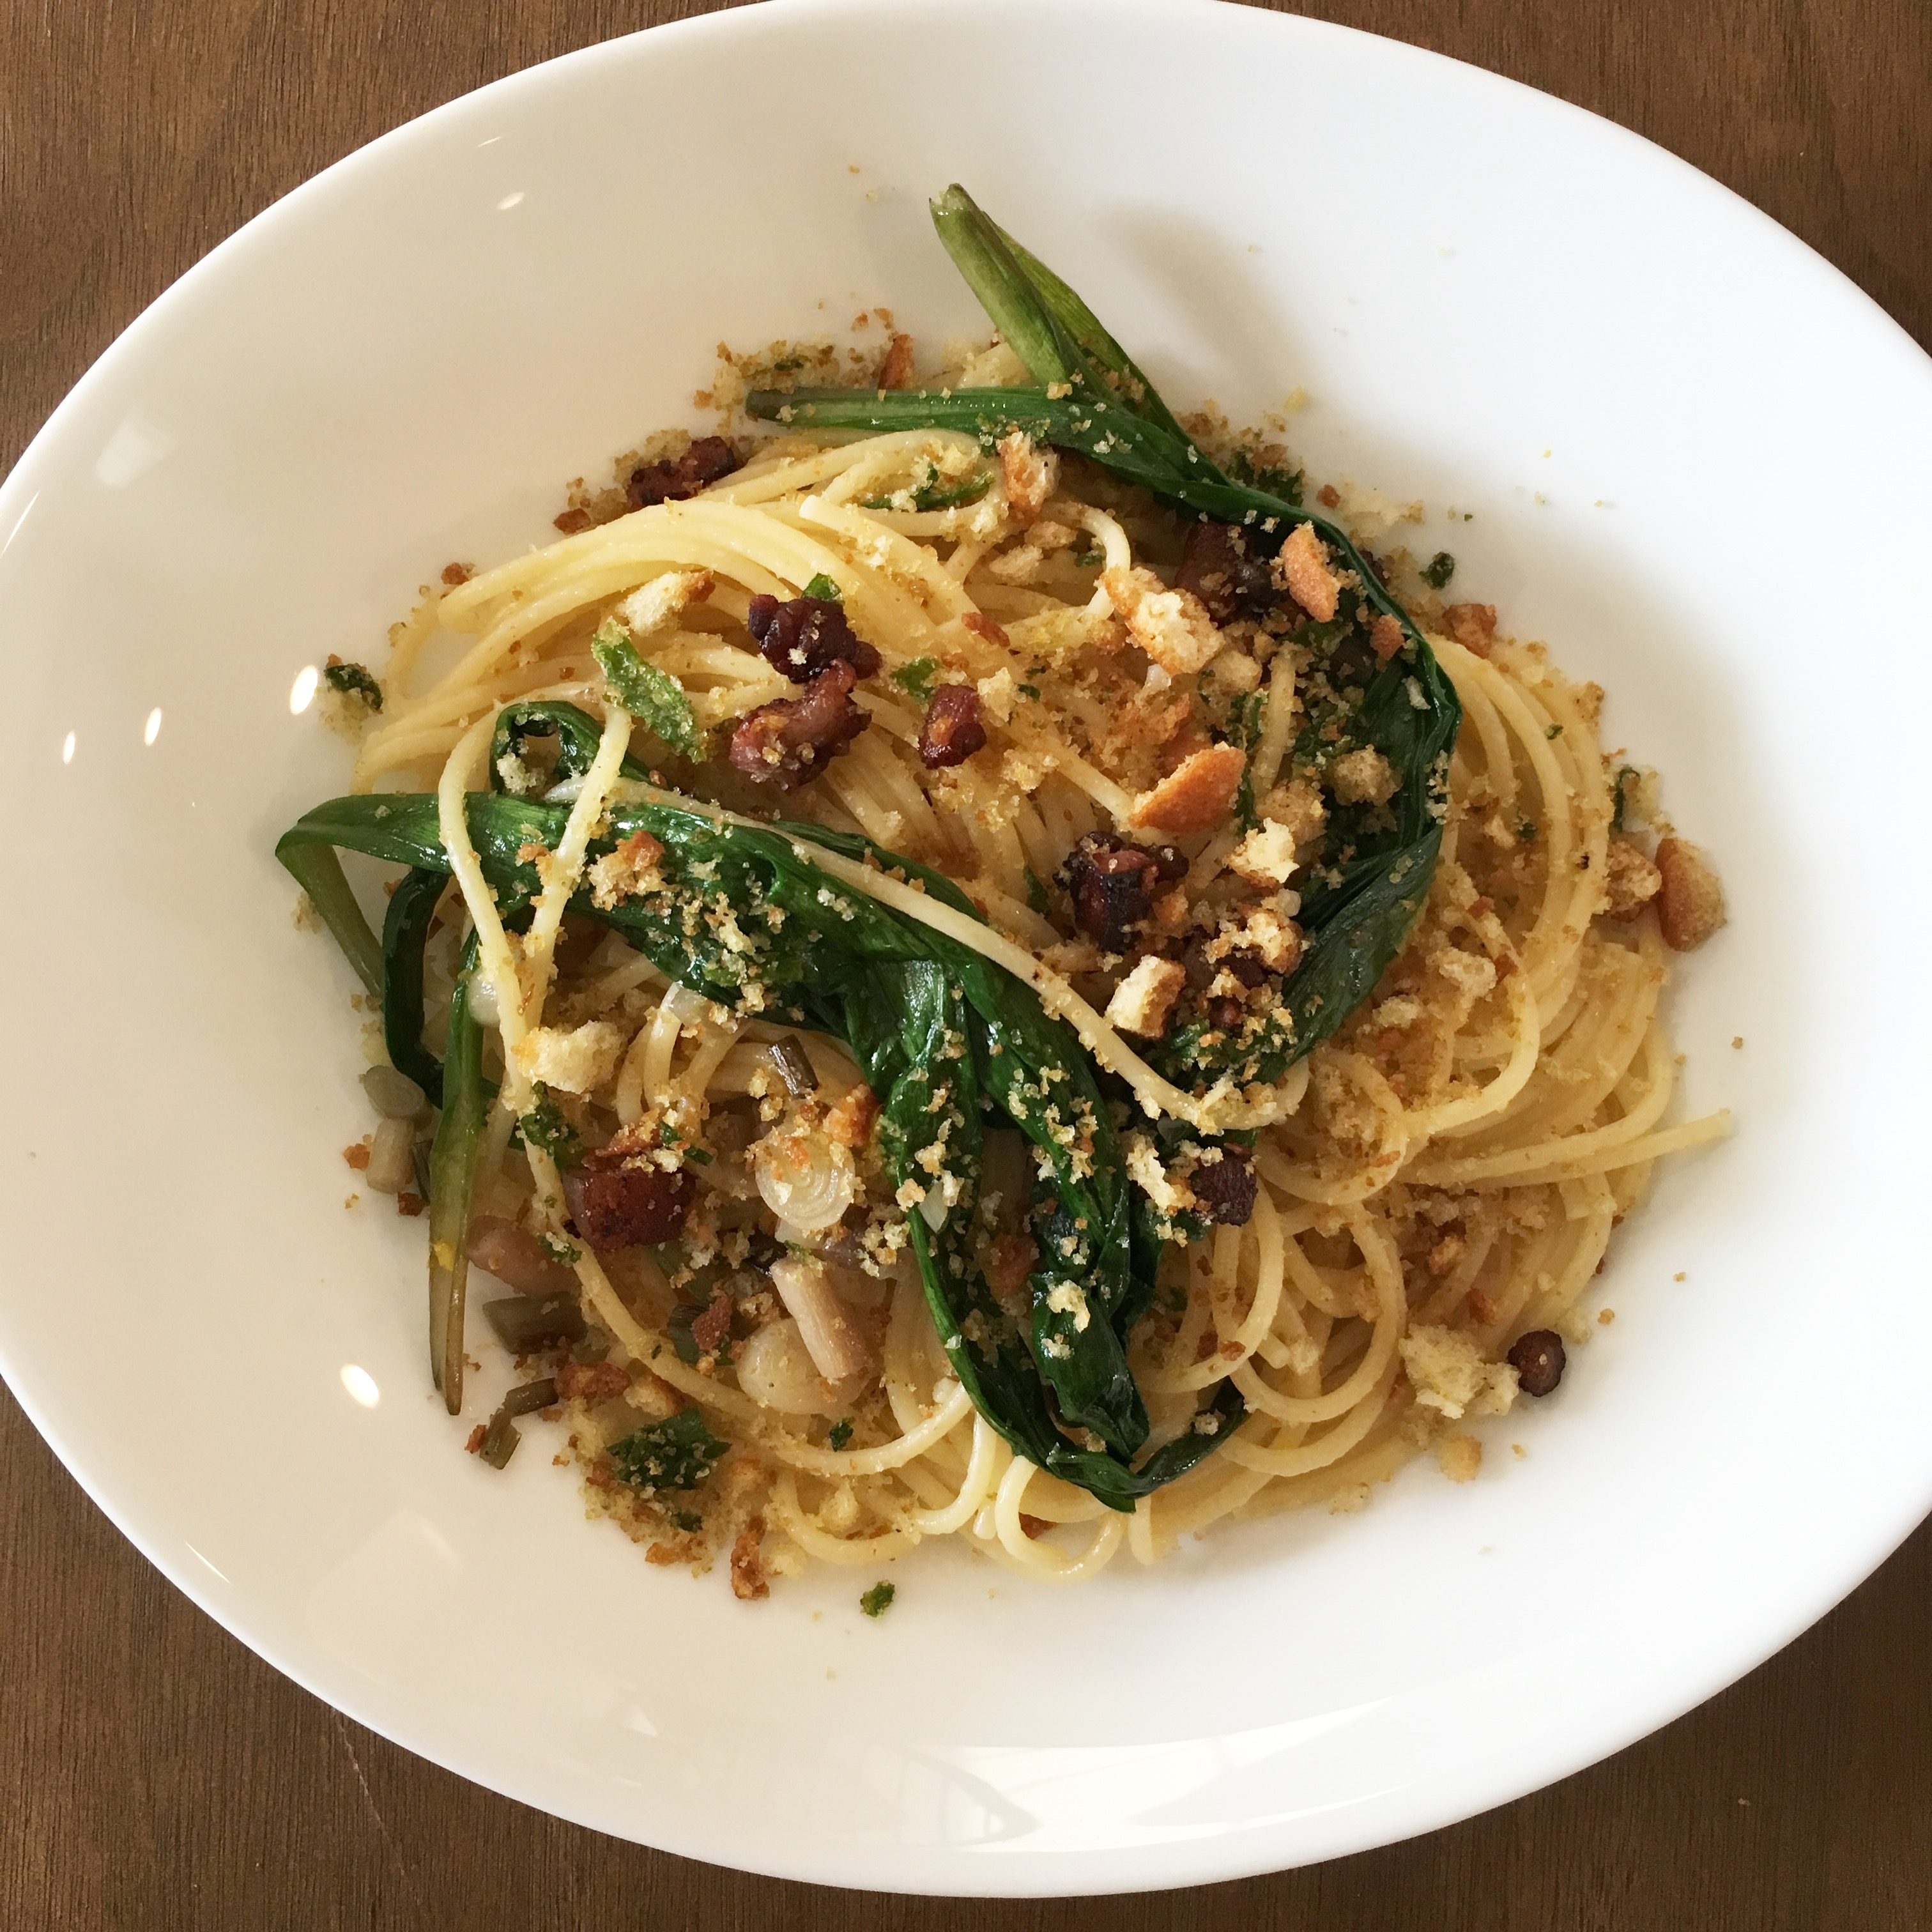 Spaghetti with Ramps, Pancetta, and Meyer Lemon Zest